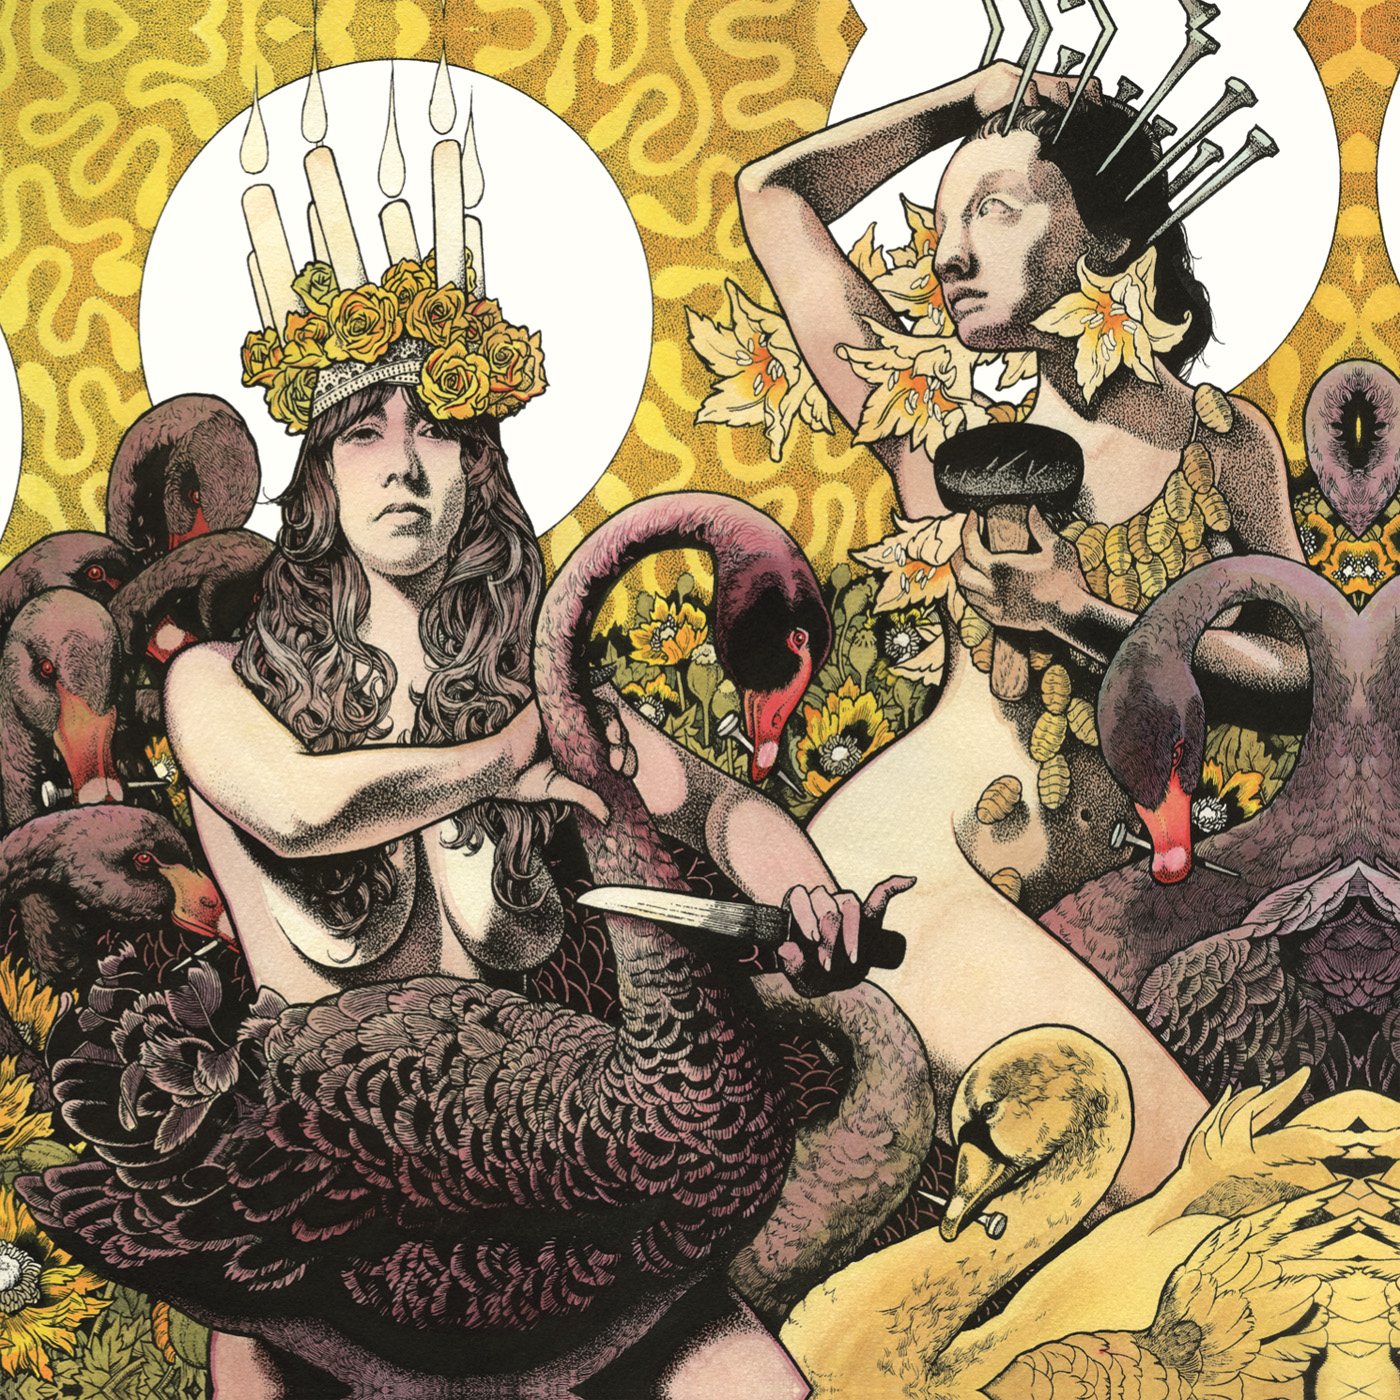 Yellow & Green by Baroness, artwork by John Dyer Baizley ...